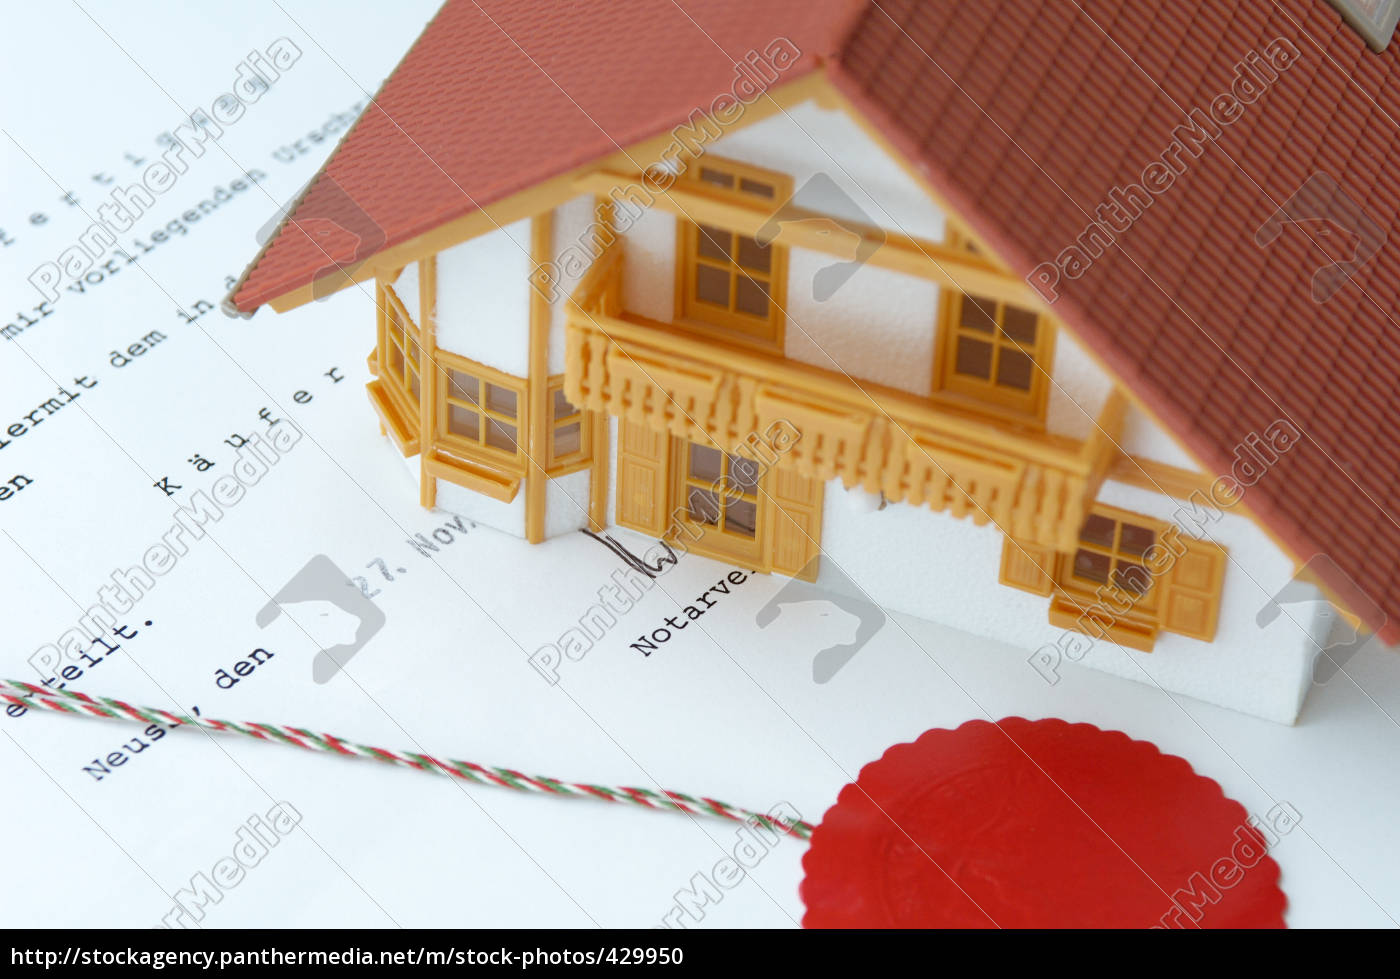 model, house, on, notarised, purchase, agreement - 429950